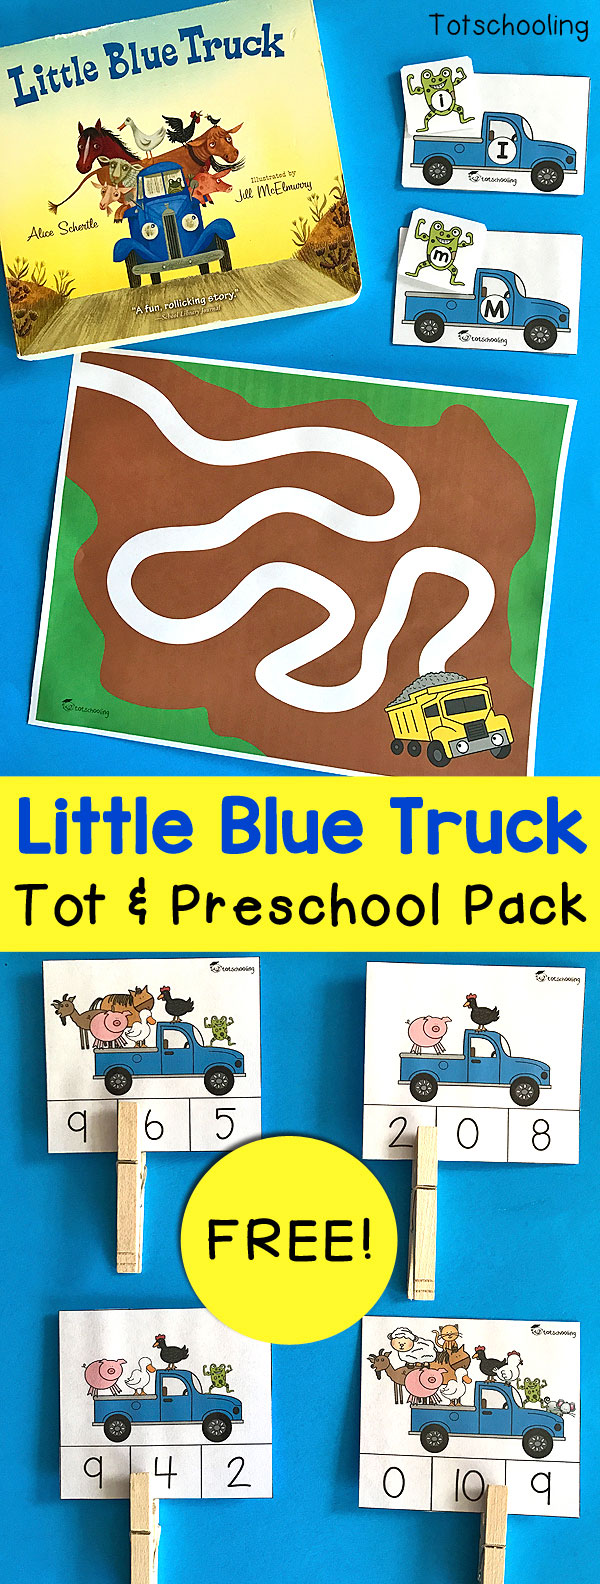 little blue truck coloring pages Little Blue Truck Activities for Toddlers and Preschoolers  little blue truck coloring pages